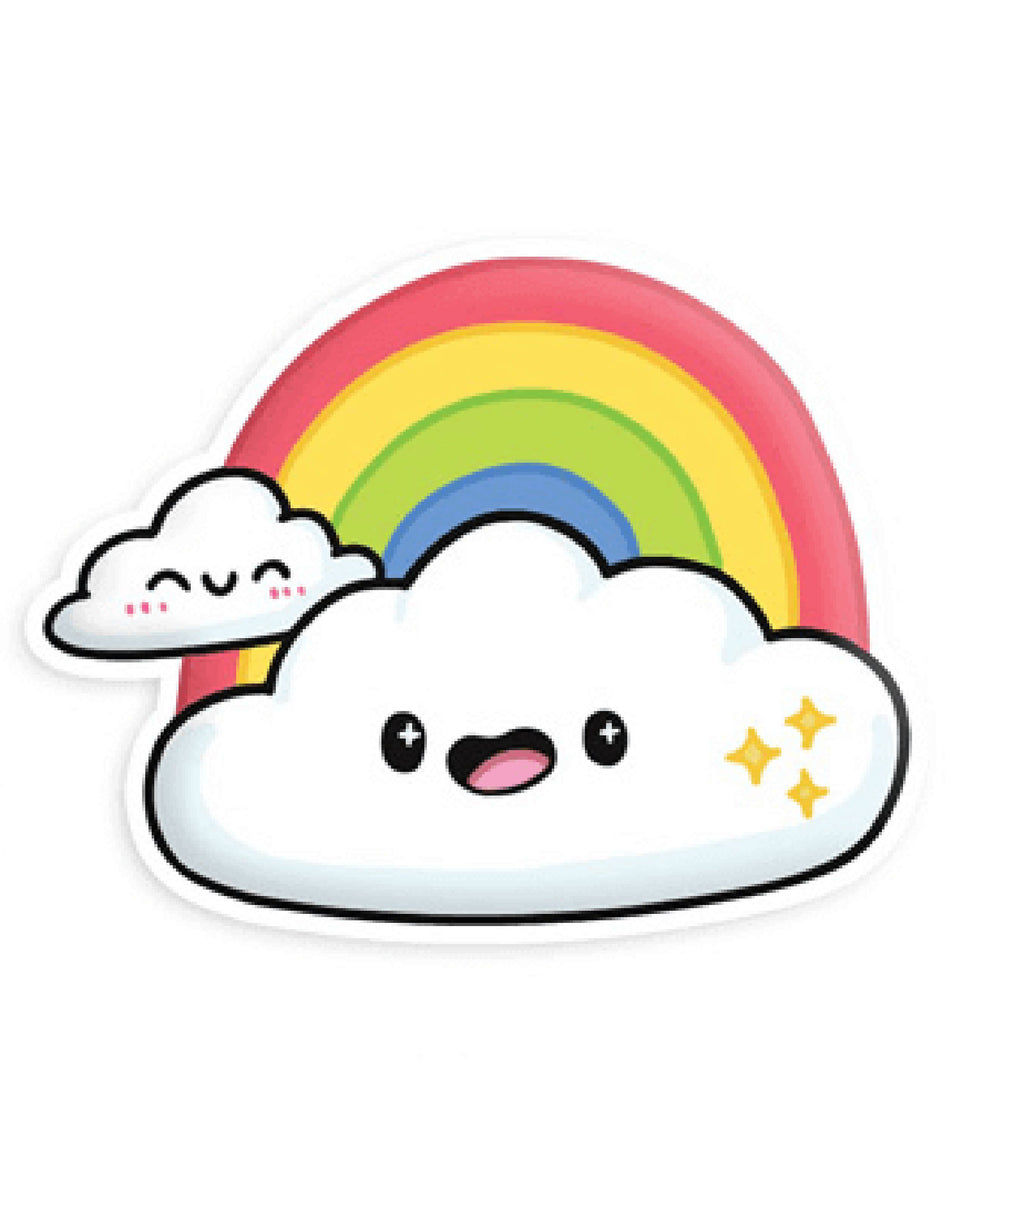 Squishable Vinyl Sticker Cloud Rainbow